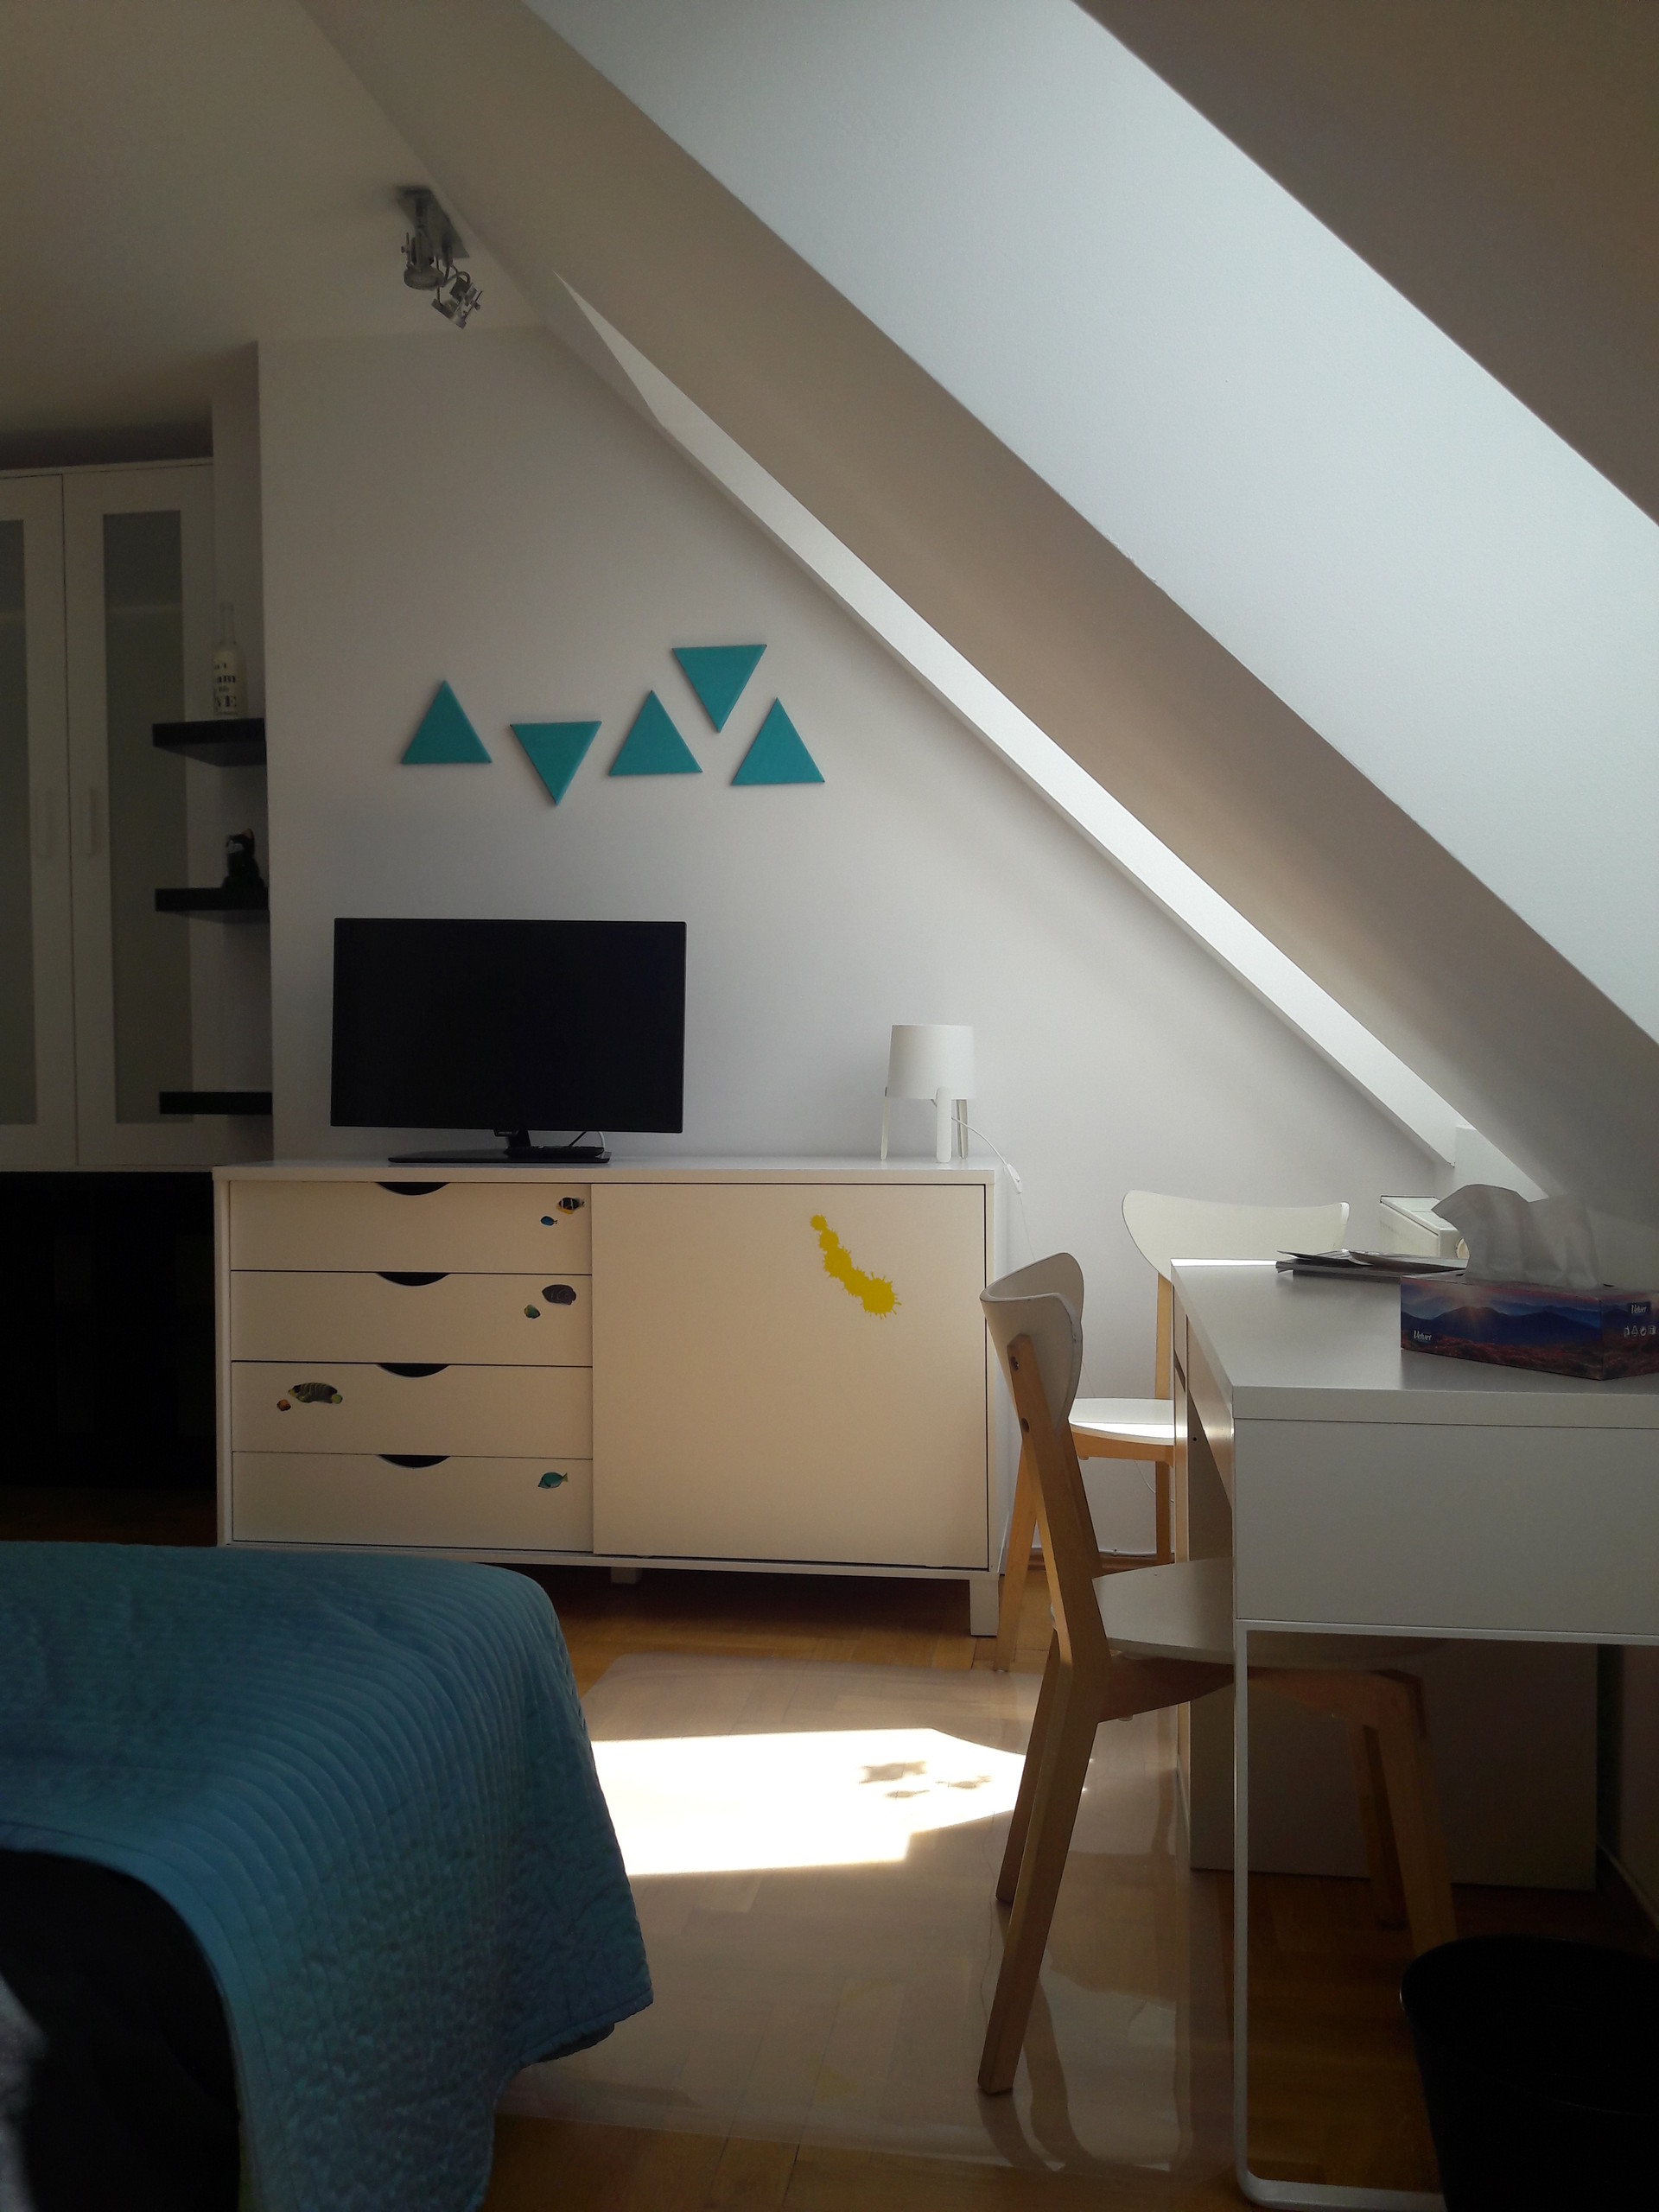 sunny room with a large bed, high standard